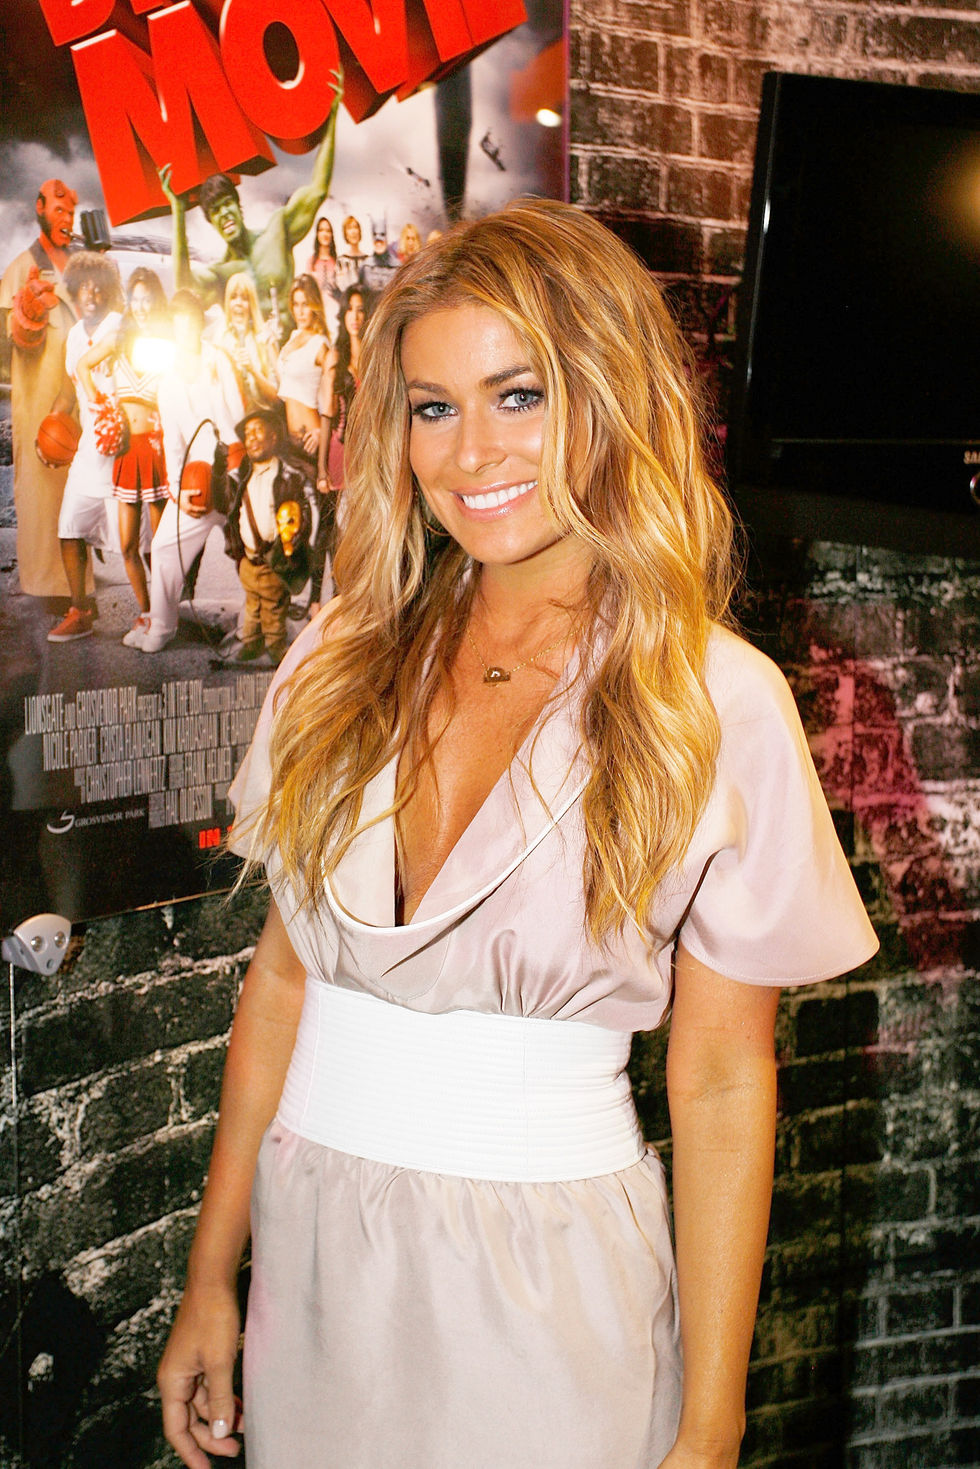 carmen-electra-and-kim-kardashian-at-diaster-movie-talent-signing-at-comic-con-2008-12